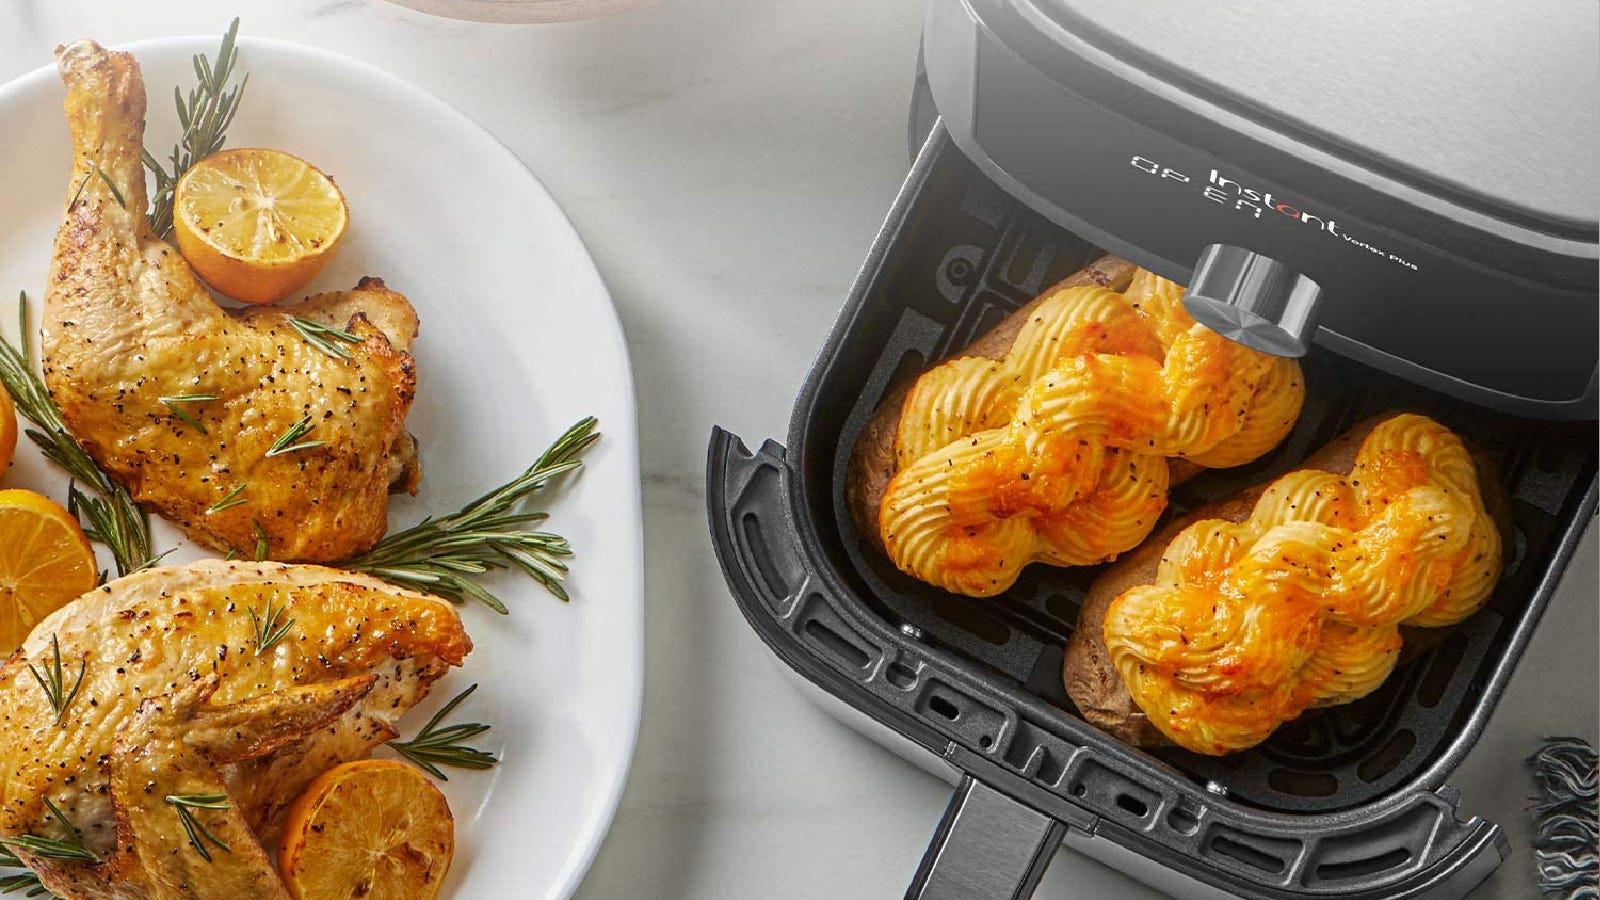 An air fryer with two fancy baked potatoes and a side plate of chicken thighs with rosemary and halved lemons.